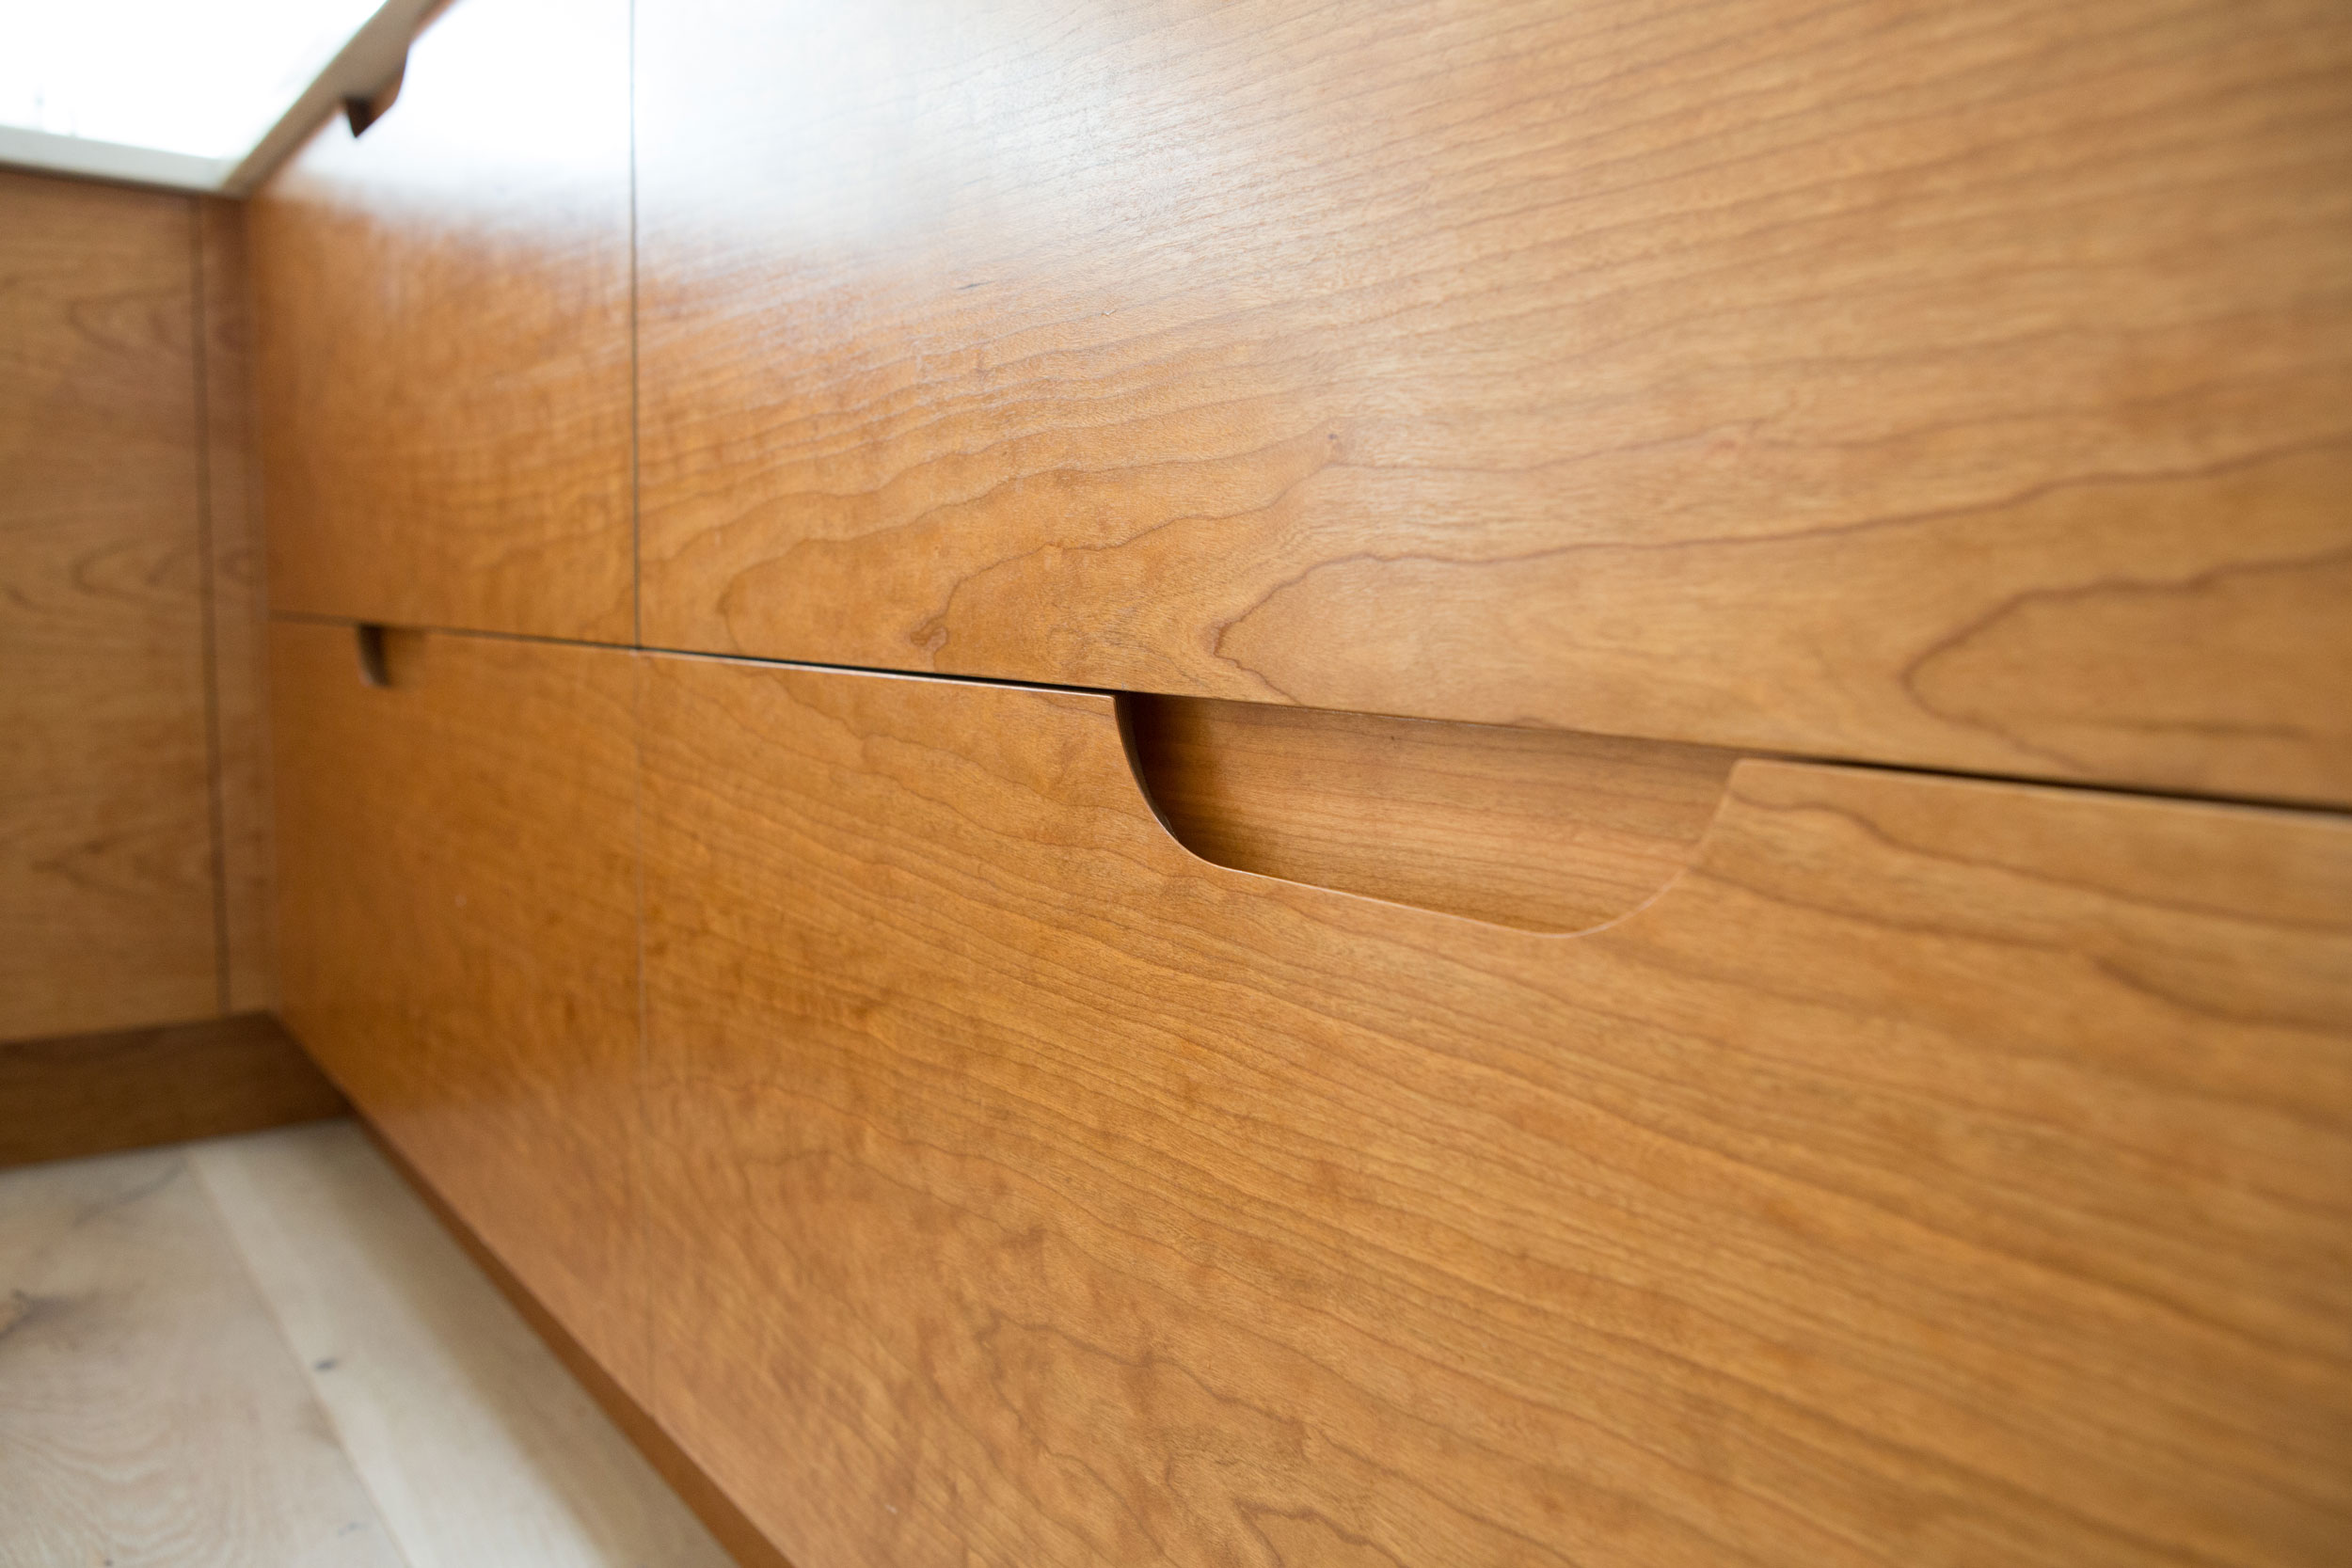 East Dulwich Kitchens Cherry Ply Drawers - West & Reid